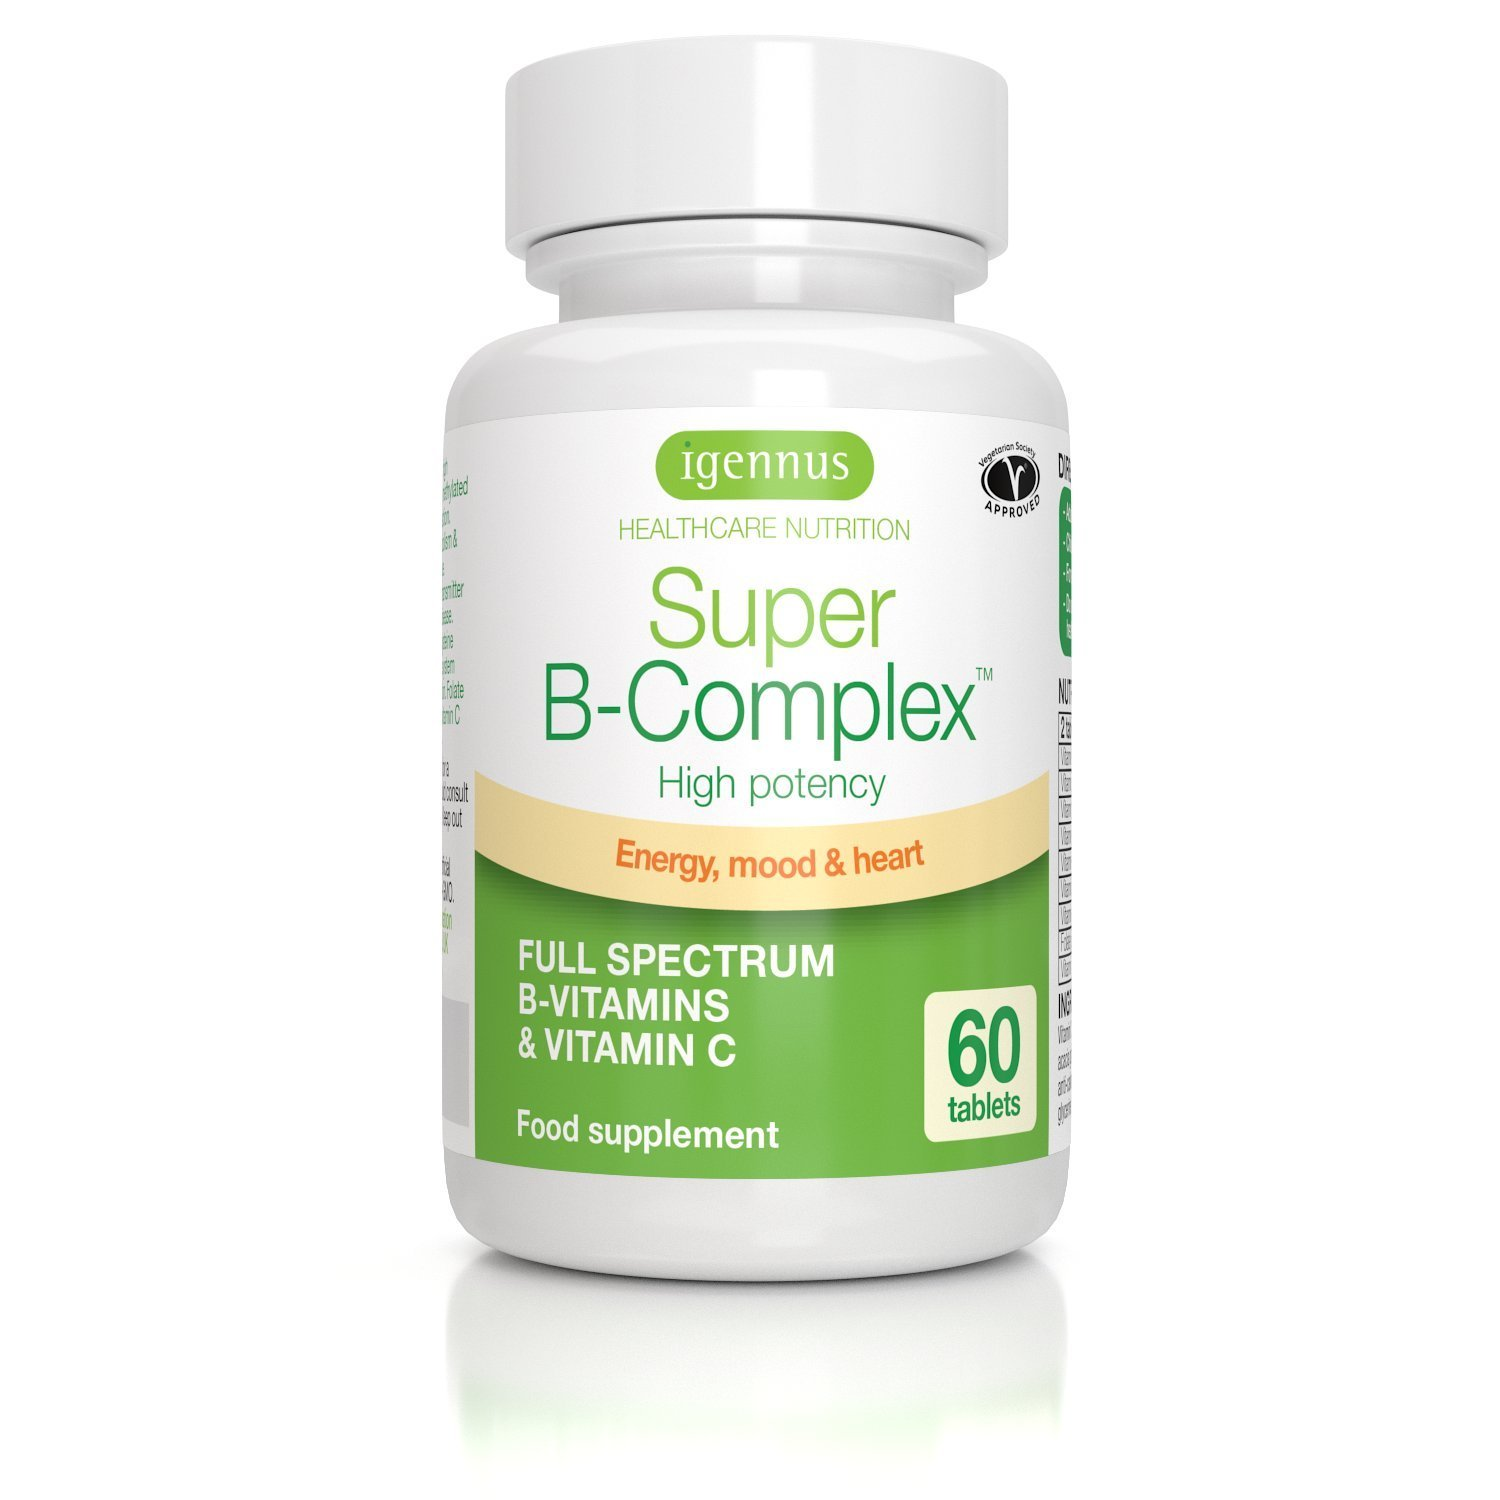 B VITAMIN - We have done hundreds of blood tests on athletes and the general population and b vitamins almost always show up in some form of deficiency.They are involved in so many metabolic processes and are co factors in energy production pathways. For optimal energy production a good quality b vitamin (one with the active forms of the nutrients) is essential.Take with food daily